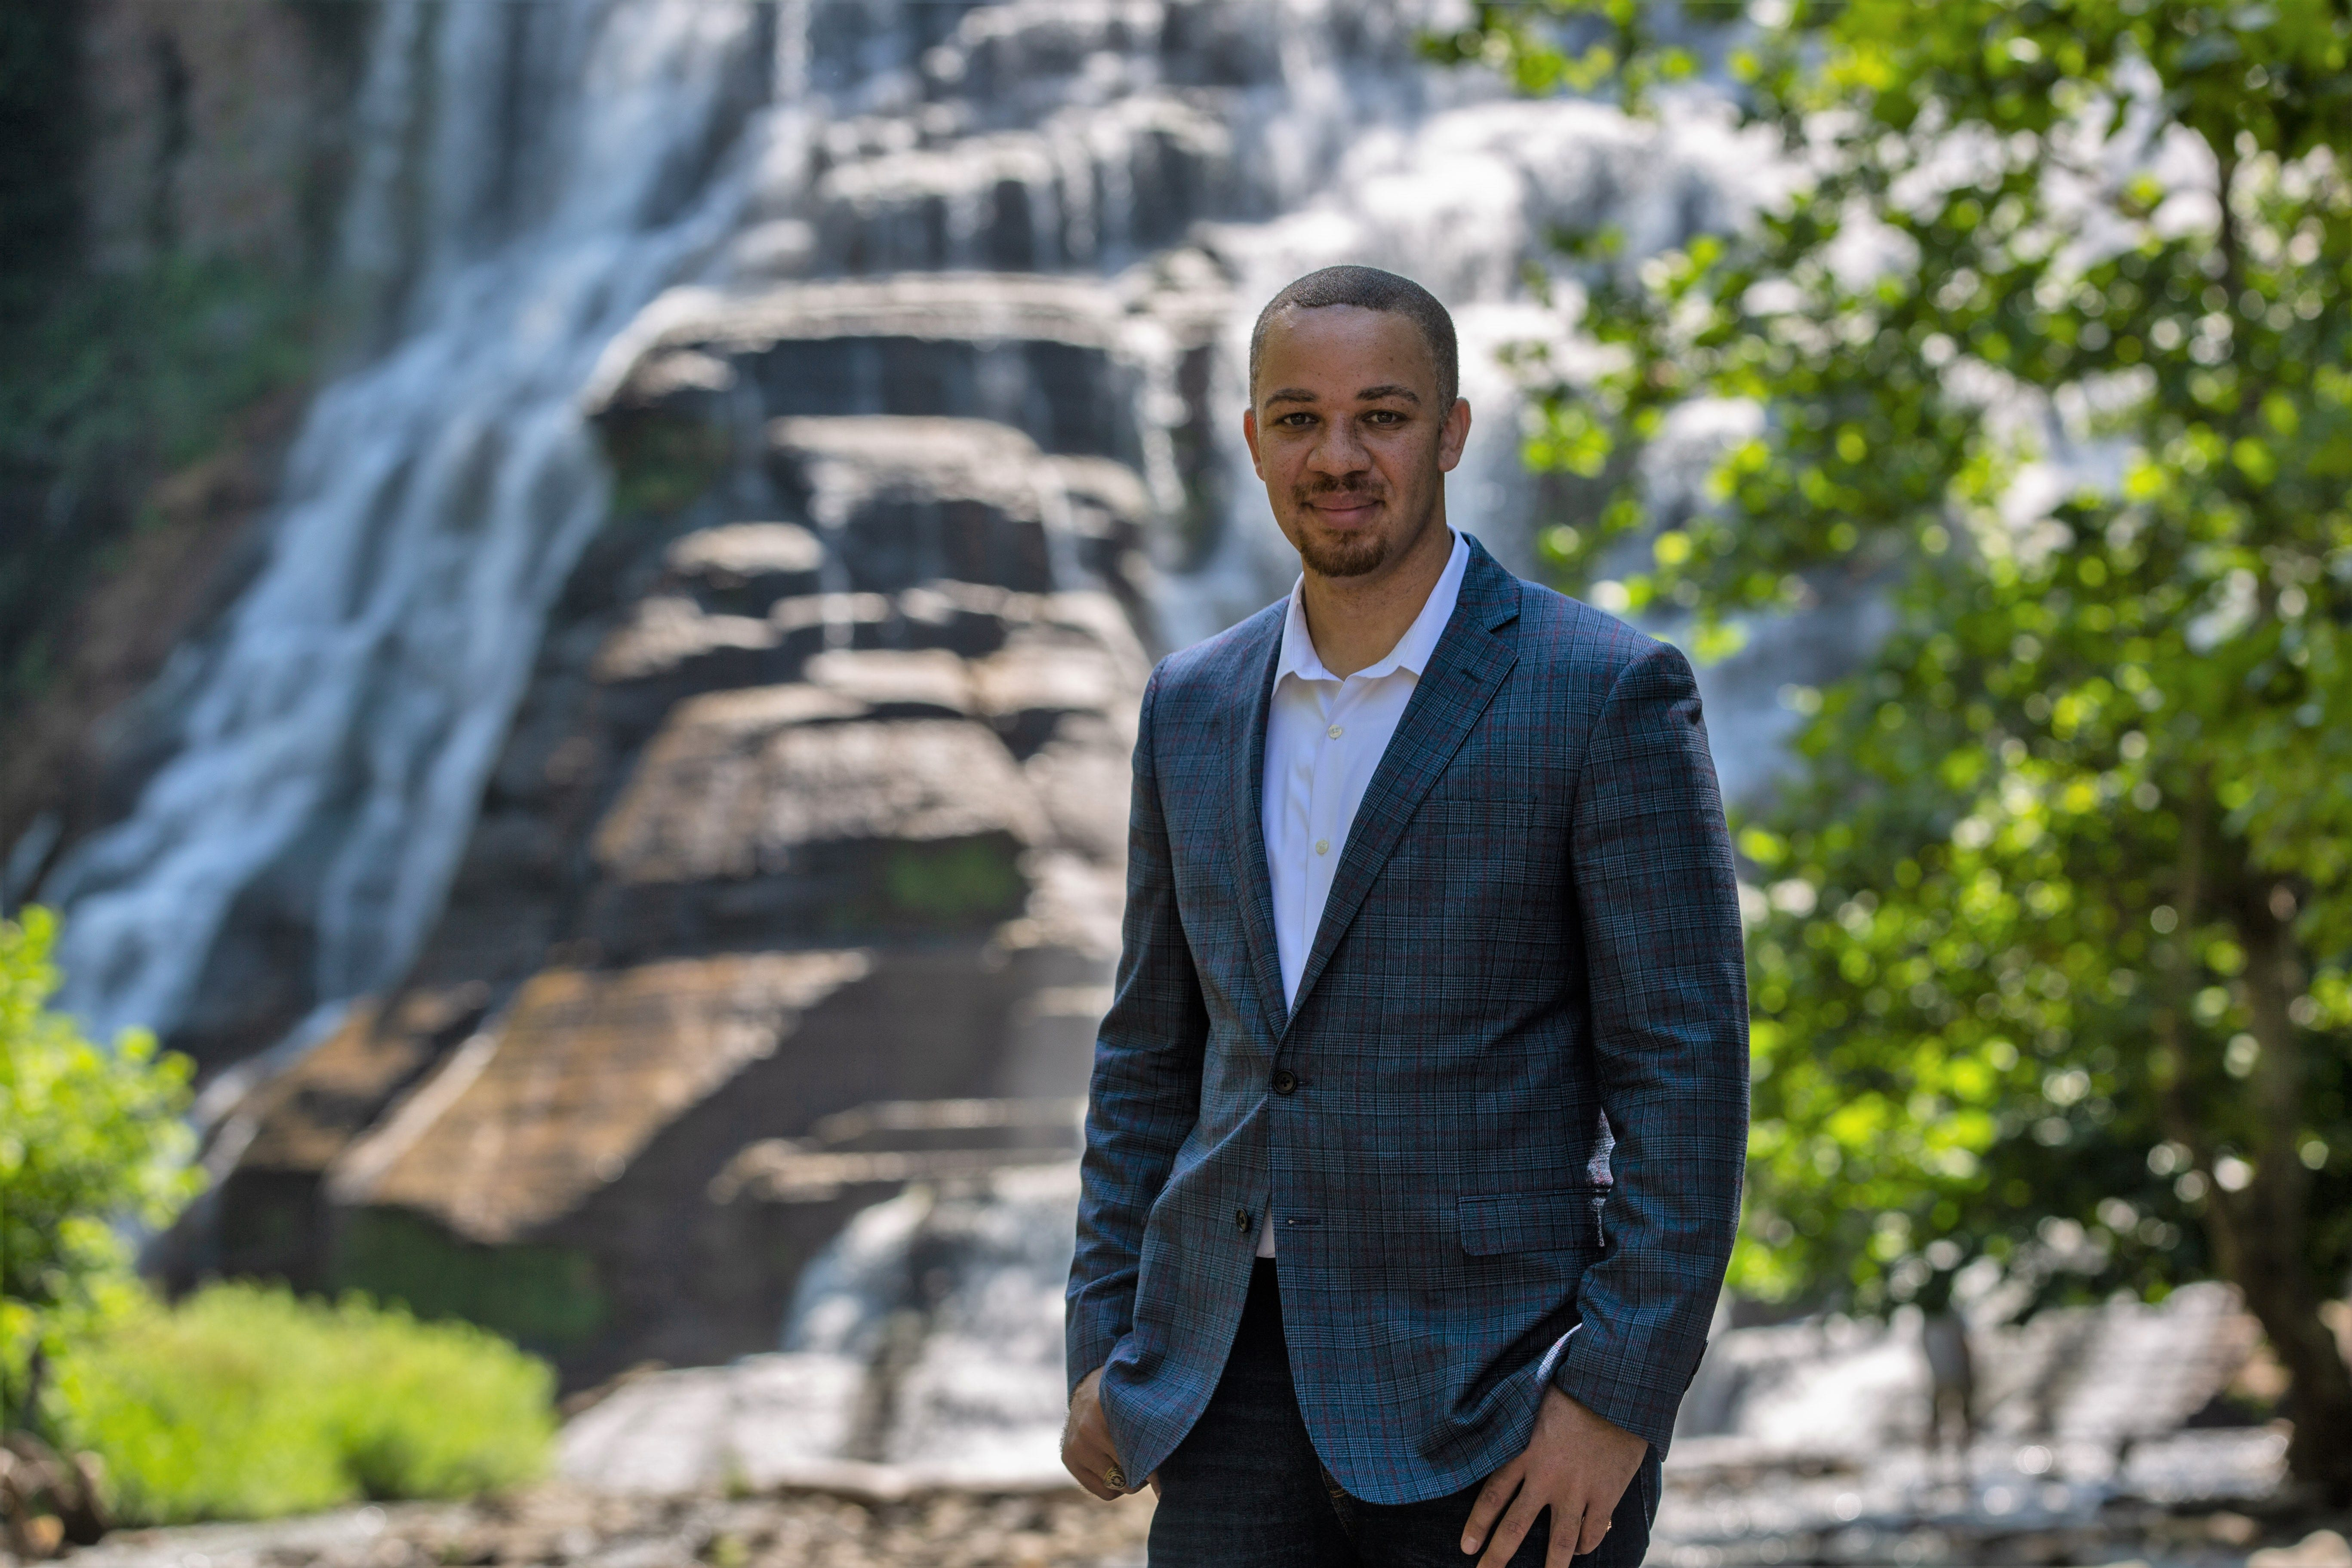 Donathan Brown, who works as the assistant provost and assistant vice president for faculty diversity and recruitment at the Rochester Institute of Technology, is also the co-founder of Adirondack Diversity Solutions.